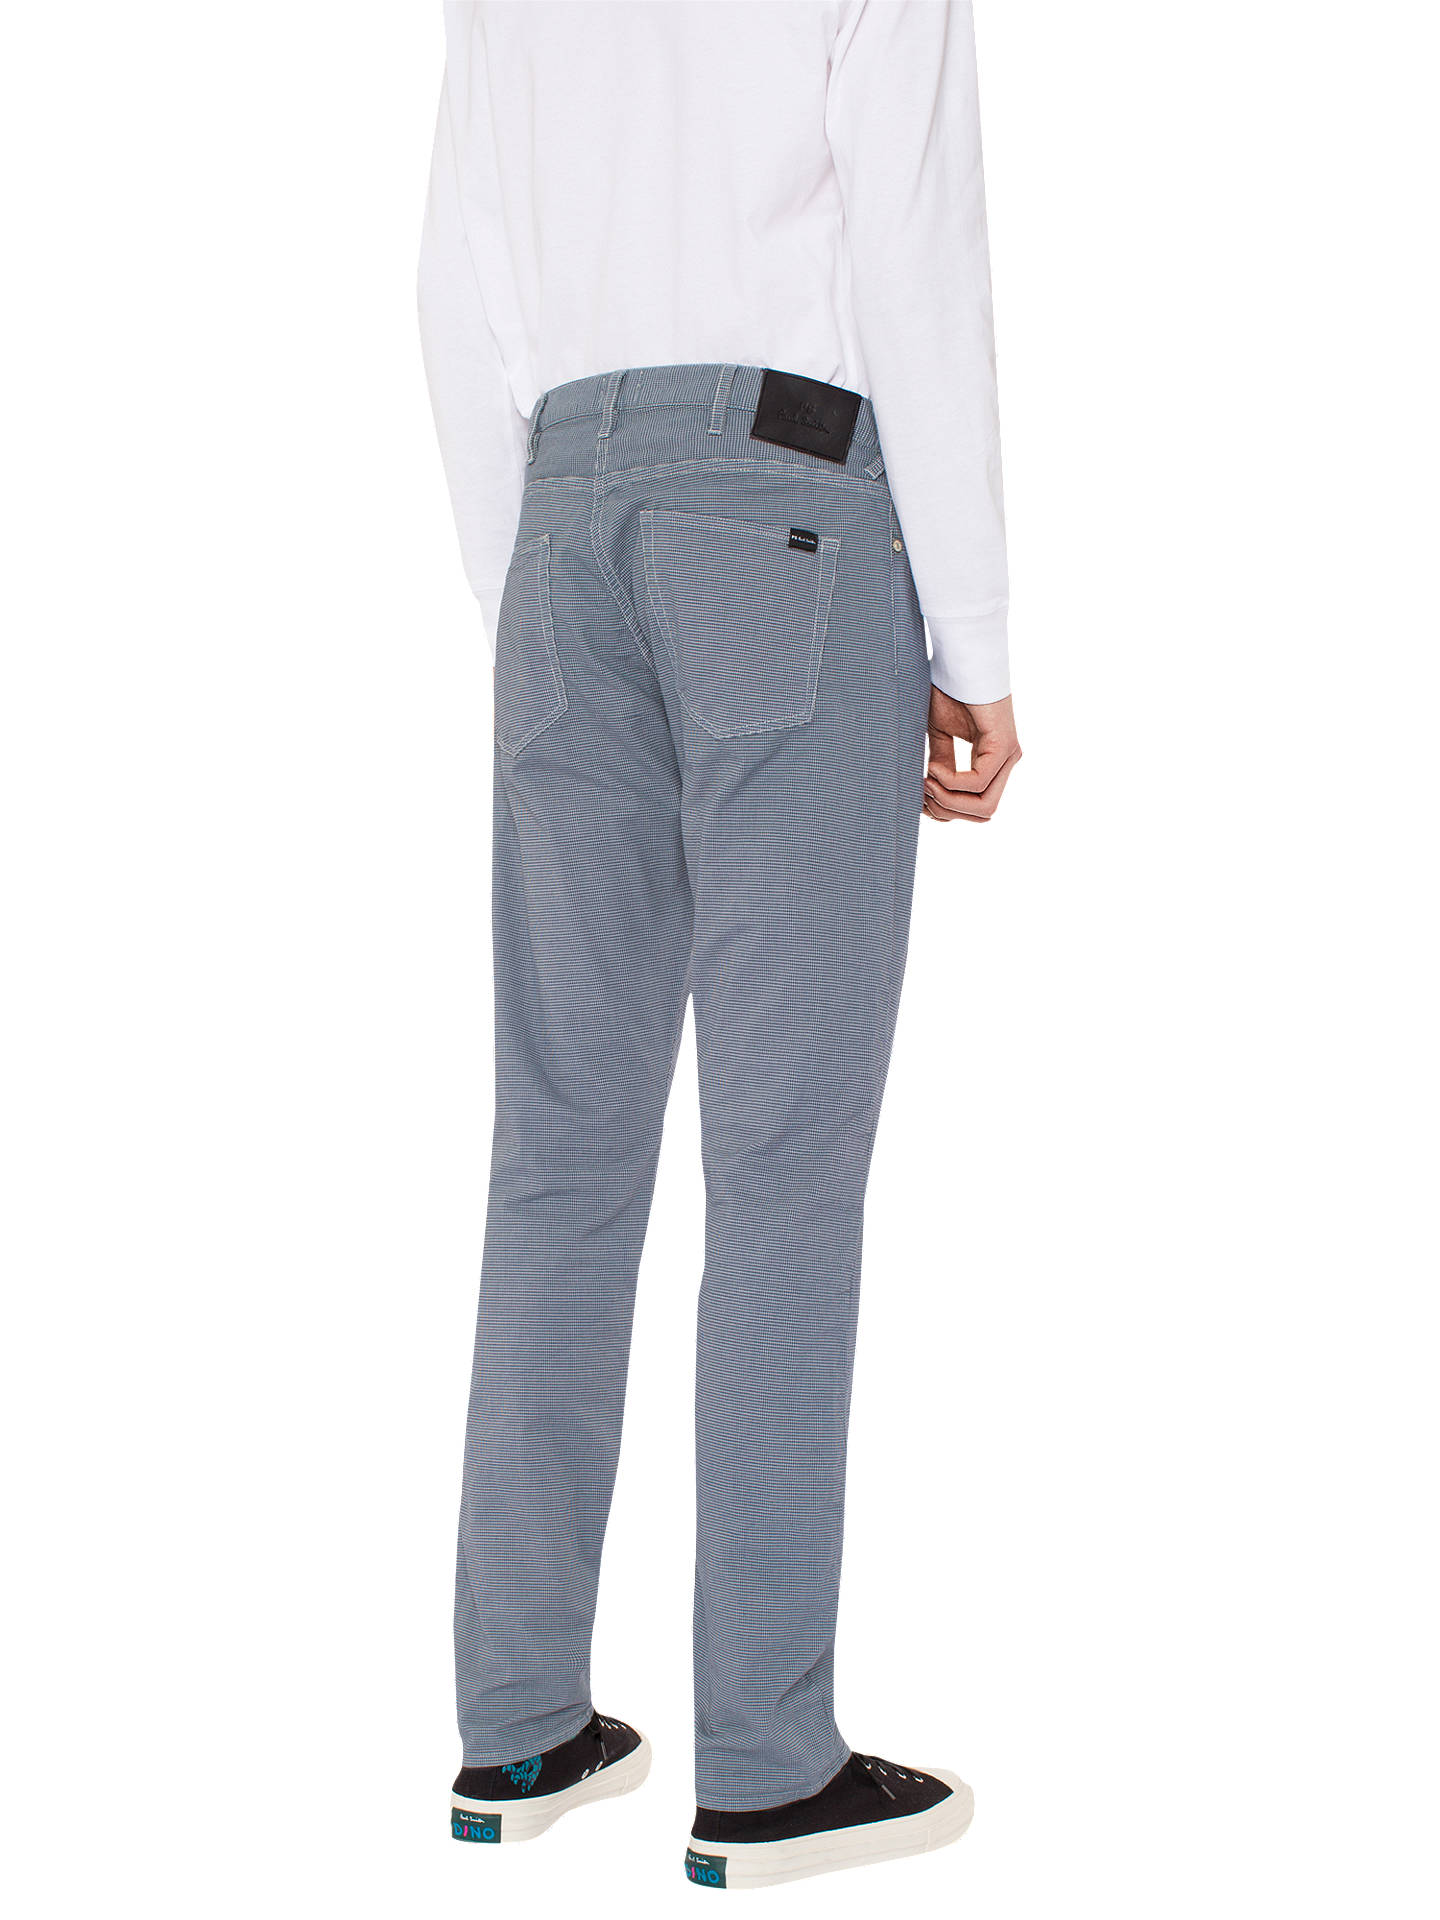 Buy PS Paul Smith Five Pocket Puppytooth Tapered Jeans, Blue, 30R Online at johnlewis.com